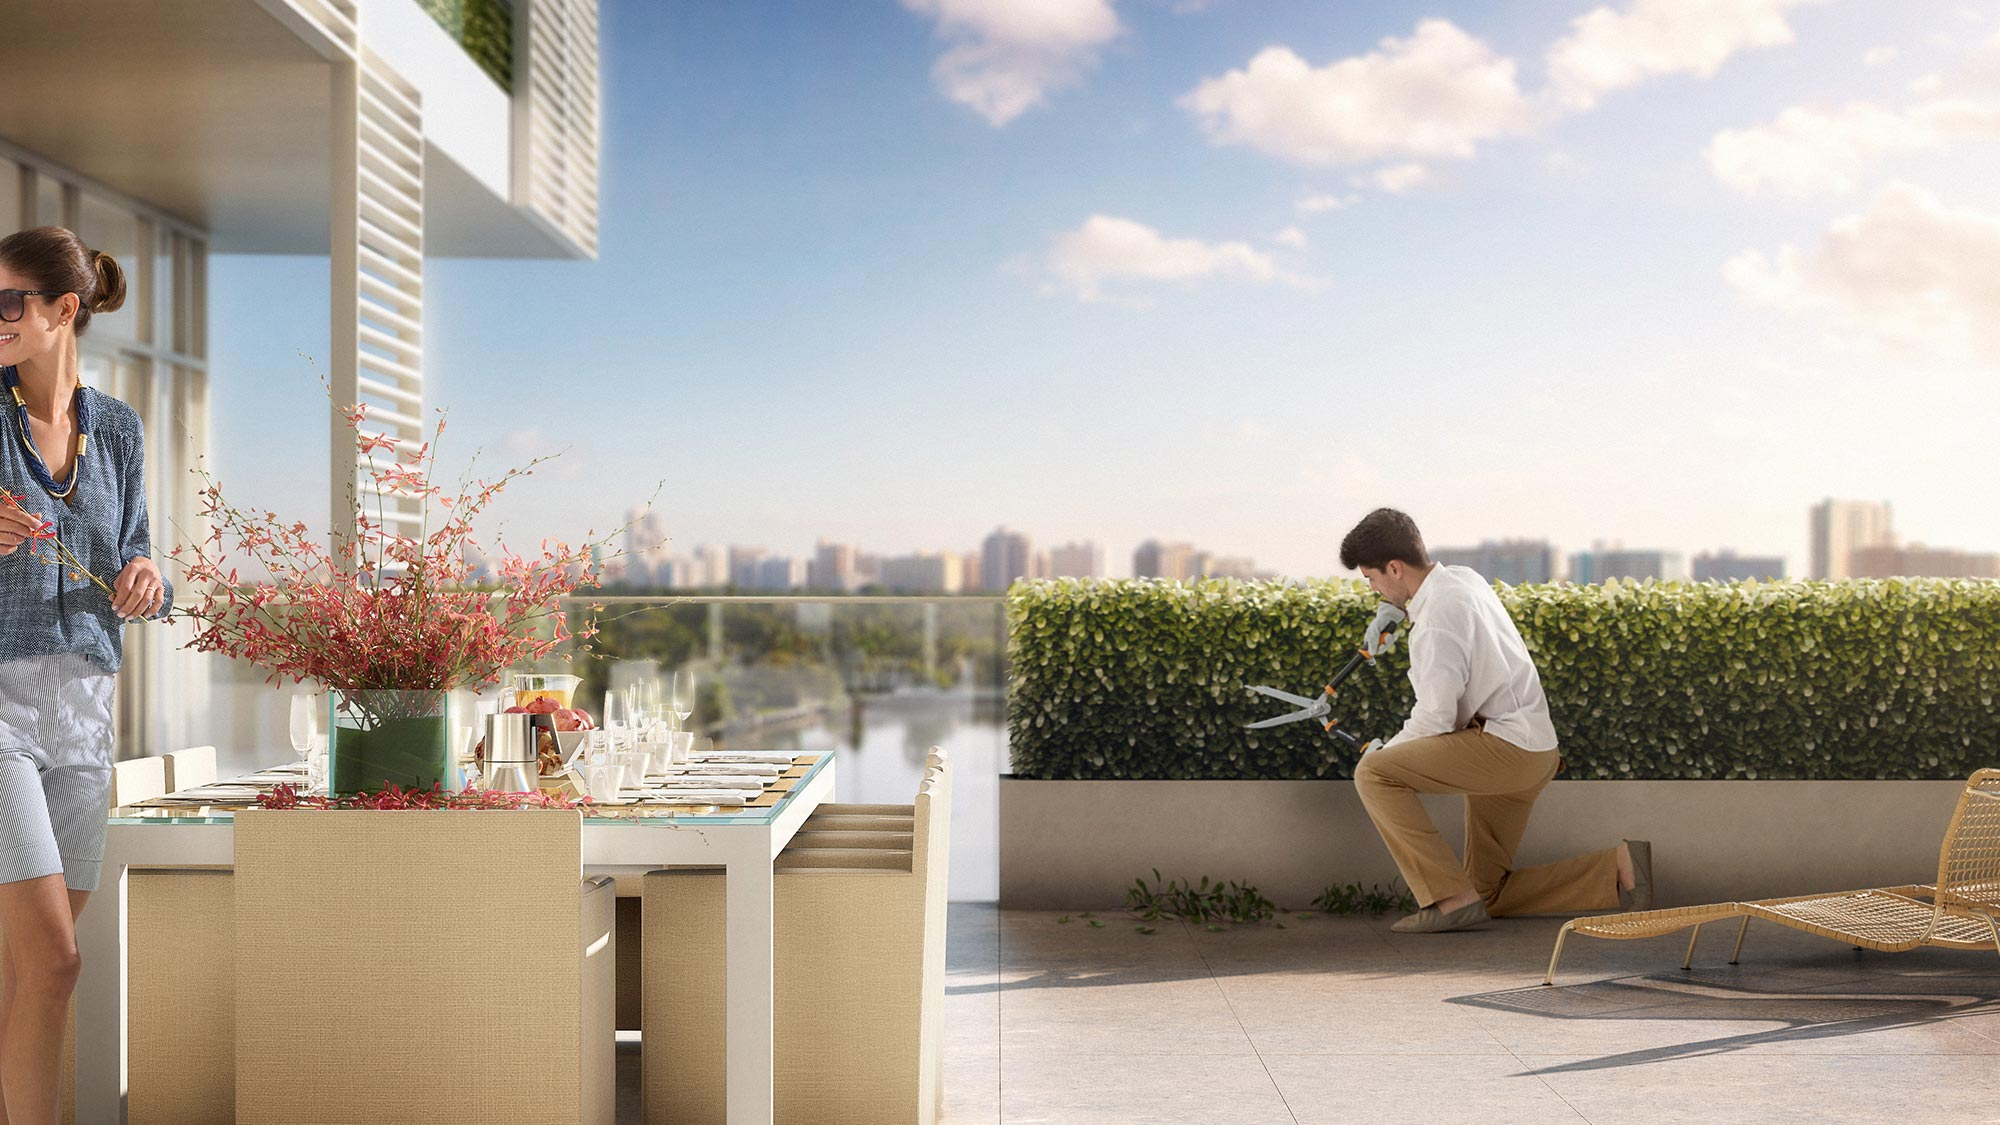 Private Garden Services at the Miami luxury condos of The Ritz-Carlton Residences, Miami Beach